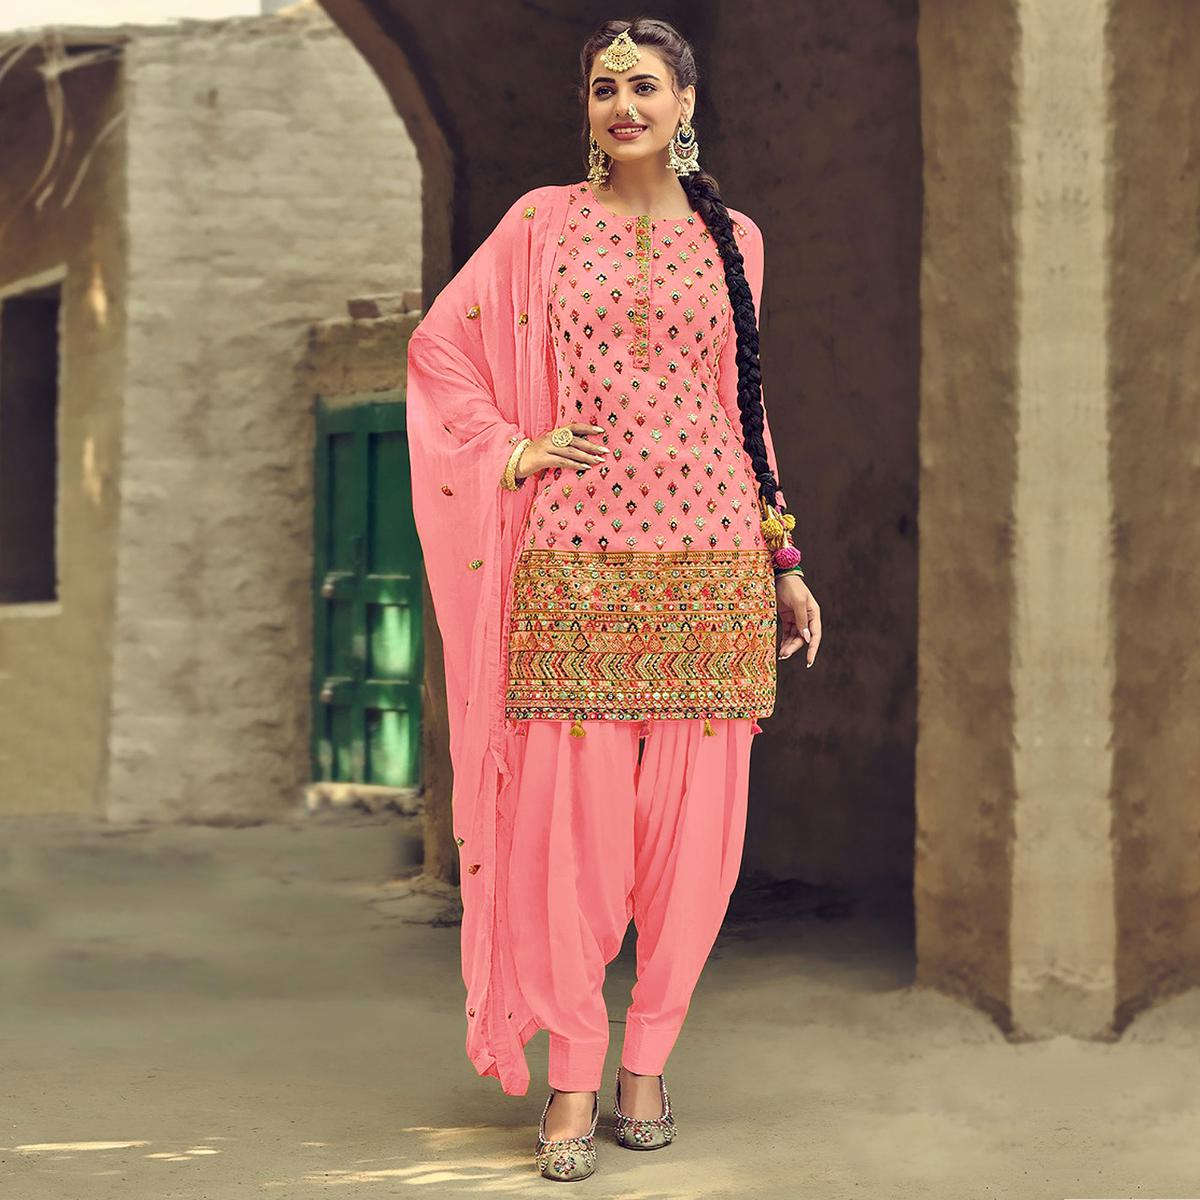 Blissful Light Pink Coloured Partywear Designer Embroidered Sequence Faux Georgette Patiala Suit